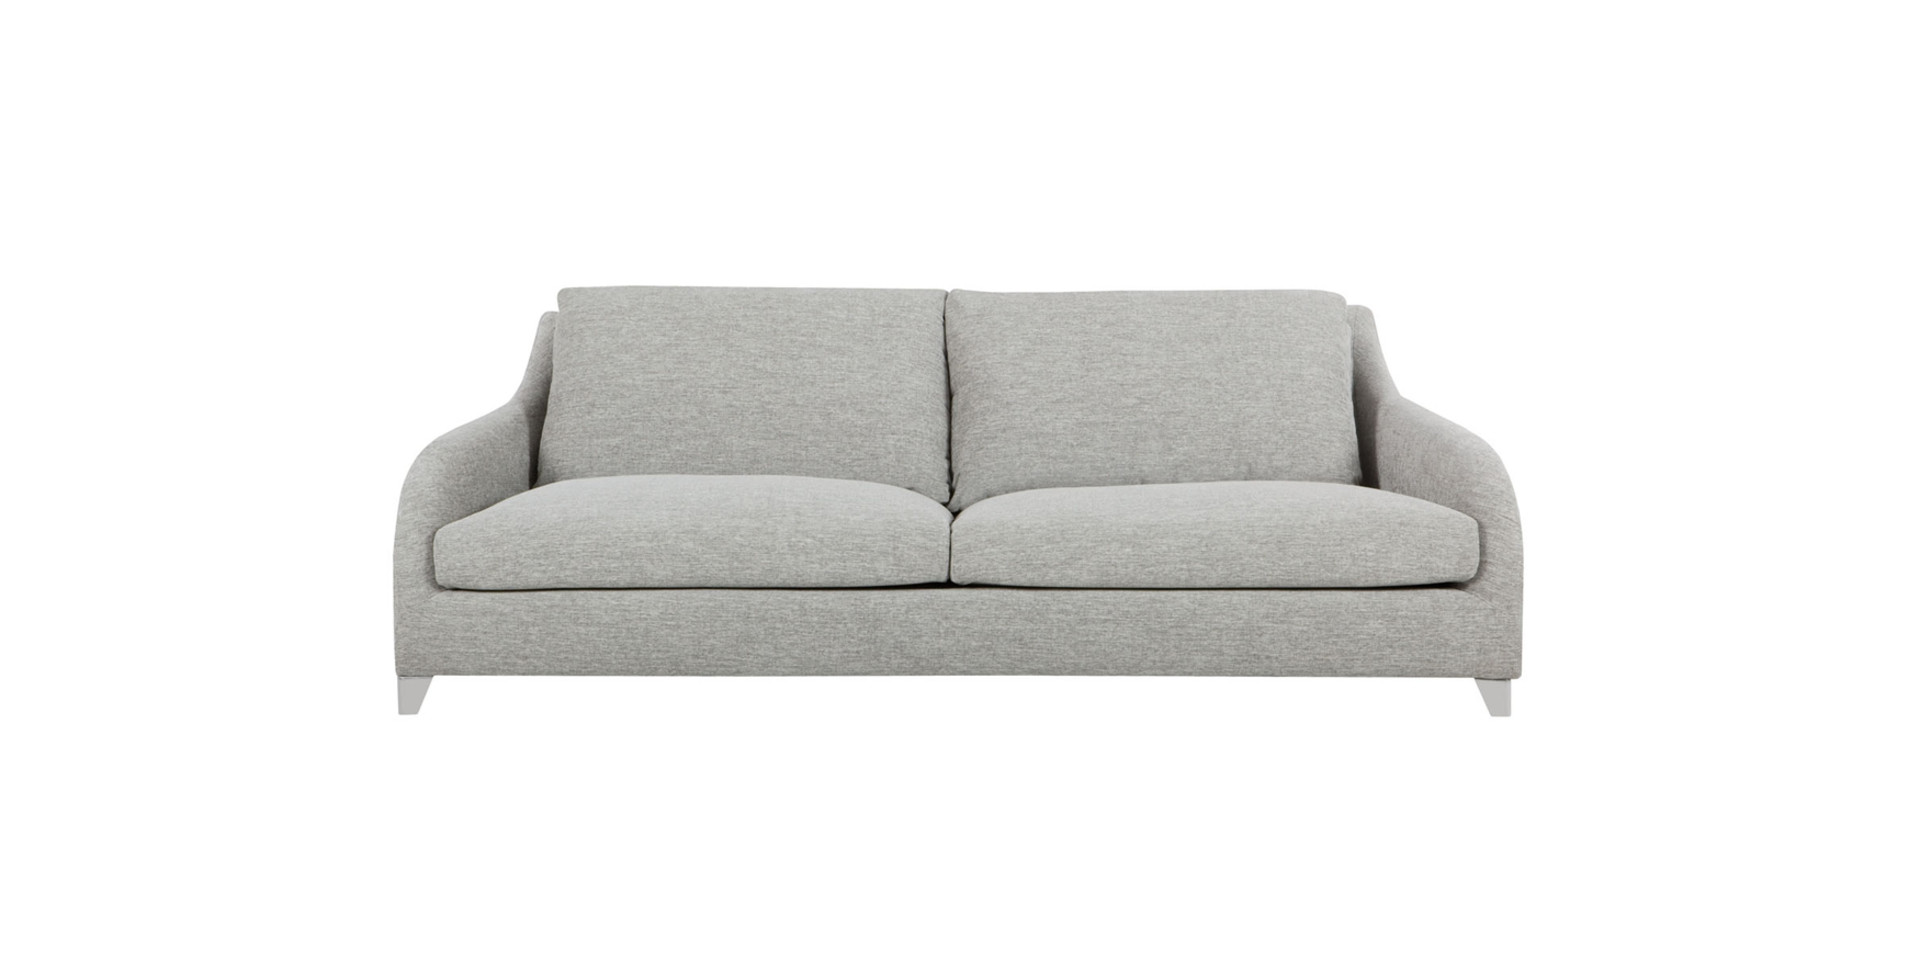 sits-lily-canape-3seater_divine50_light_grey_1